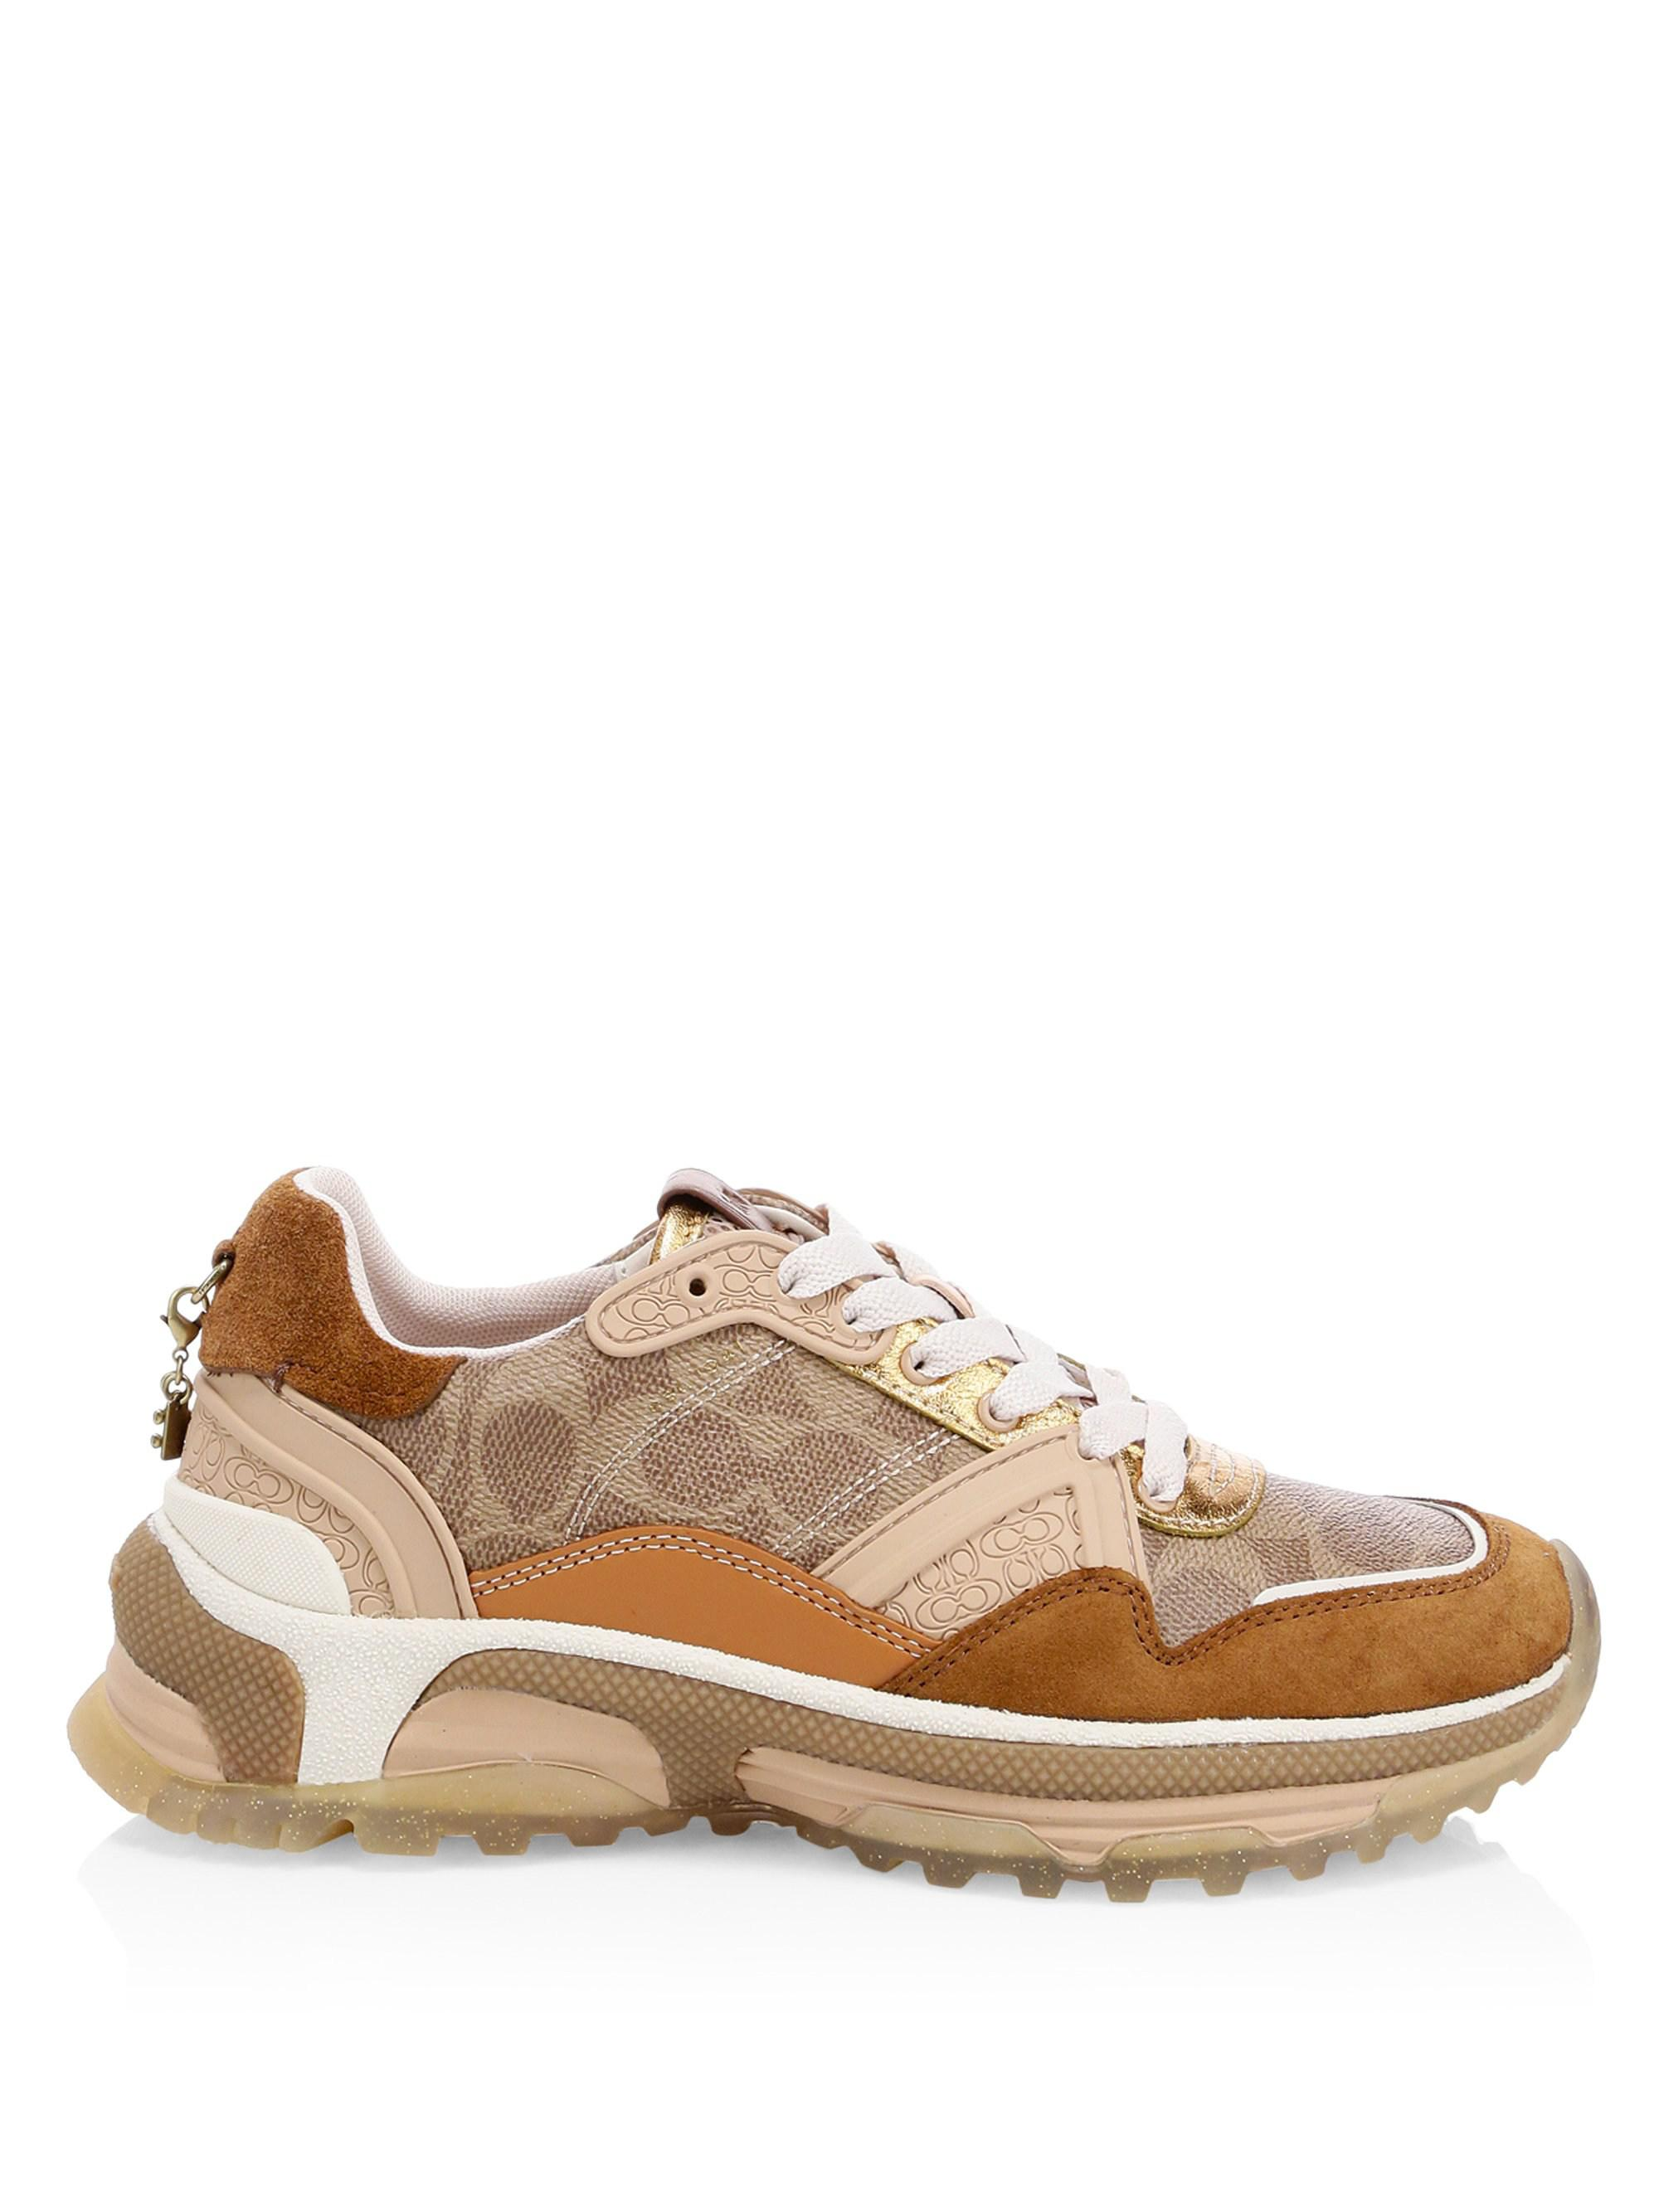 COACH Leather Signature Runner Sneakers